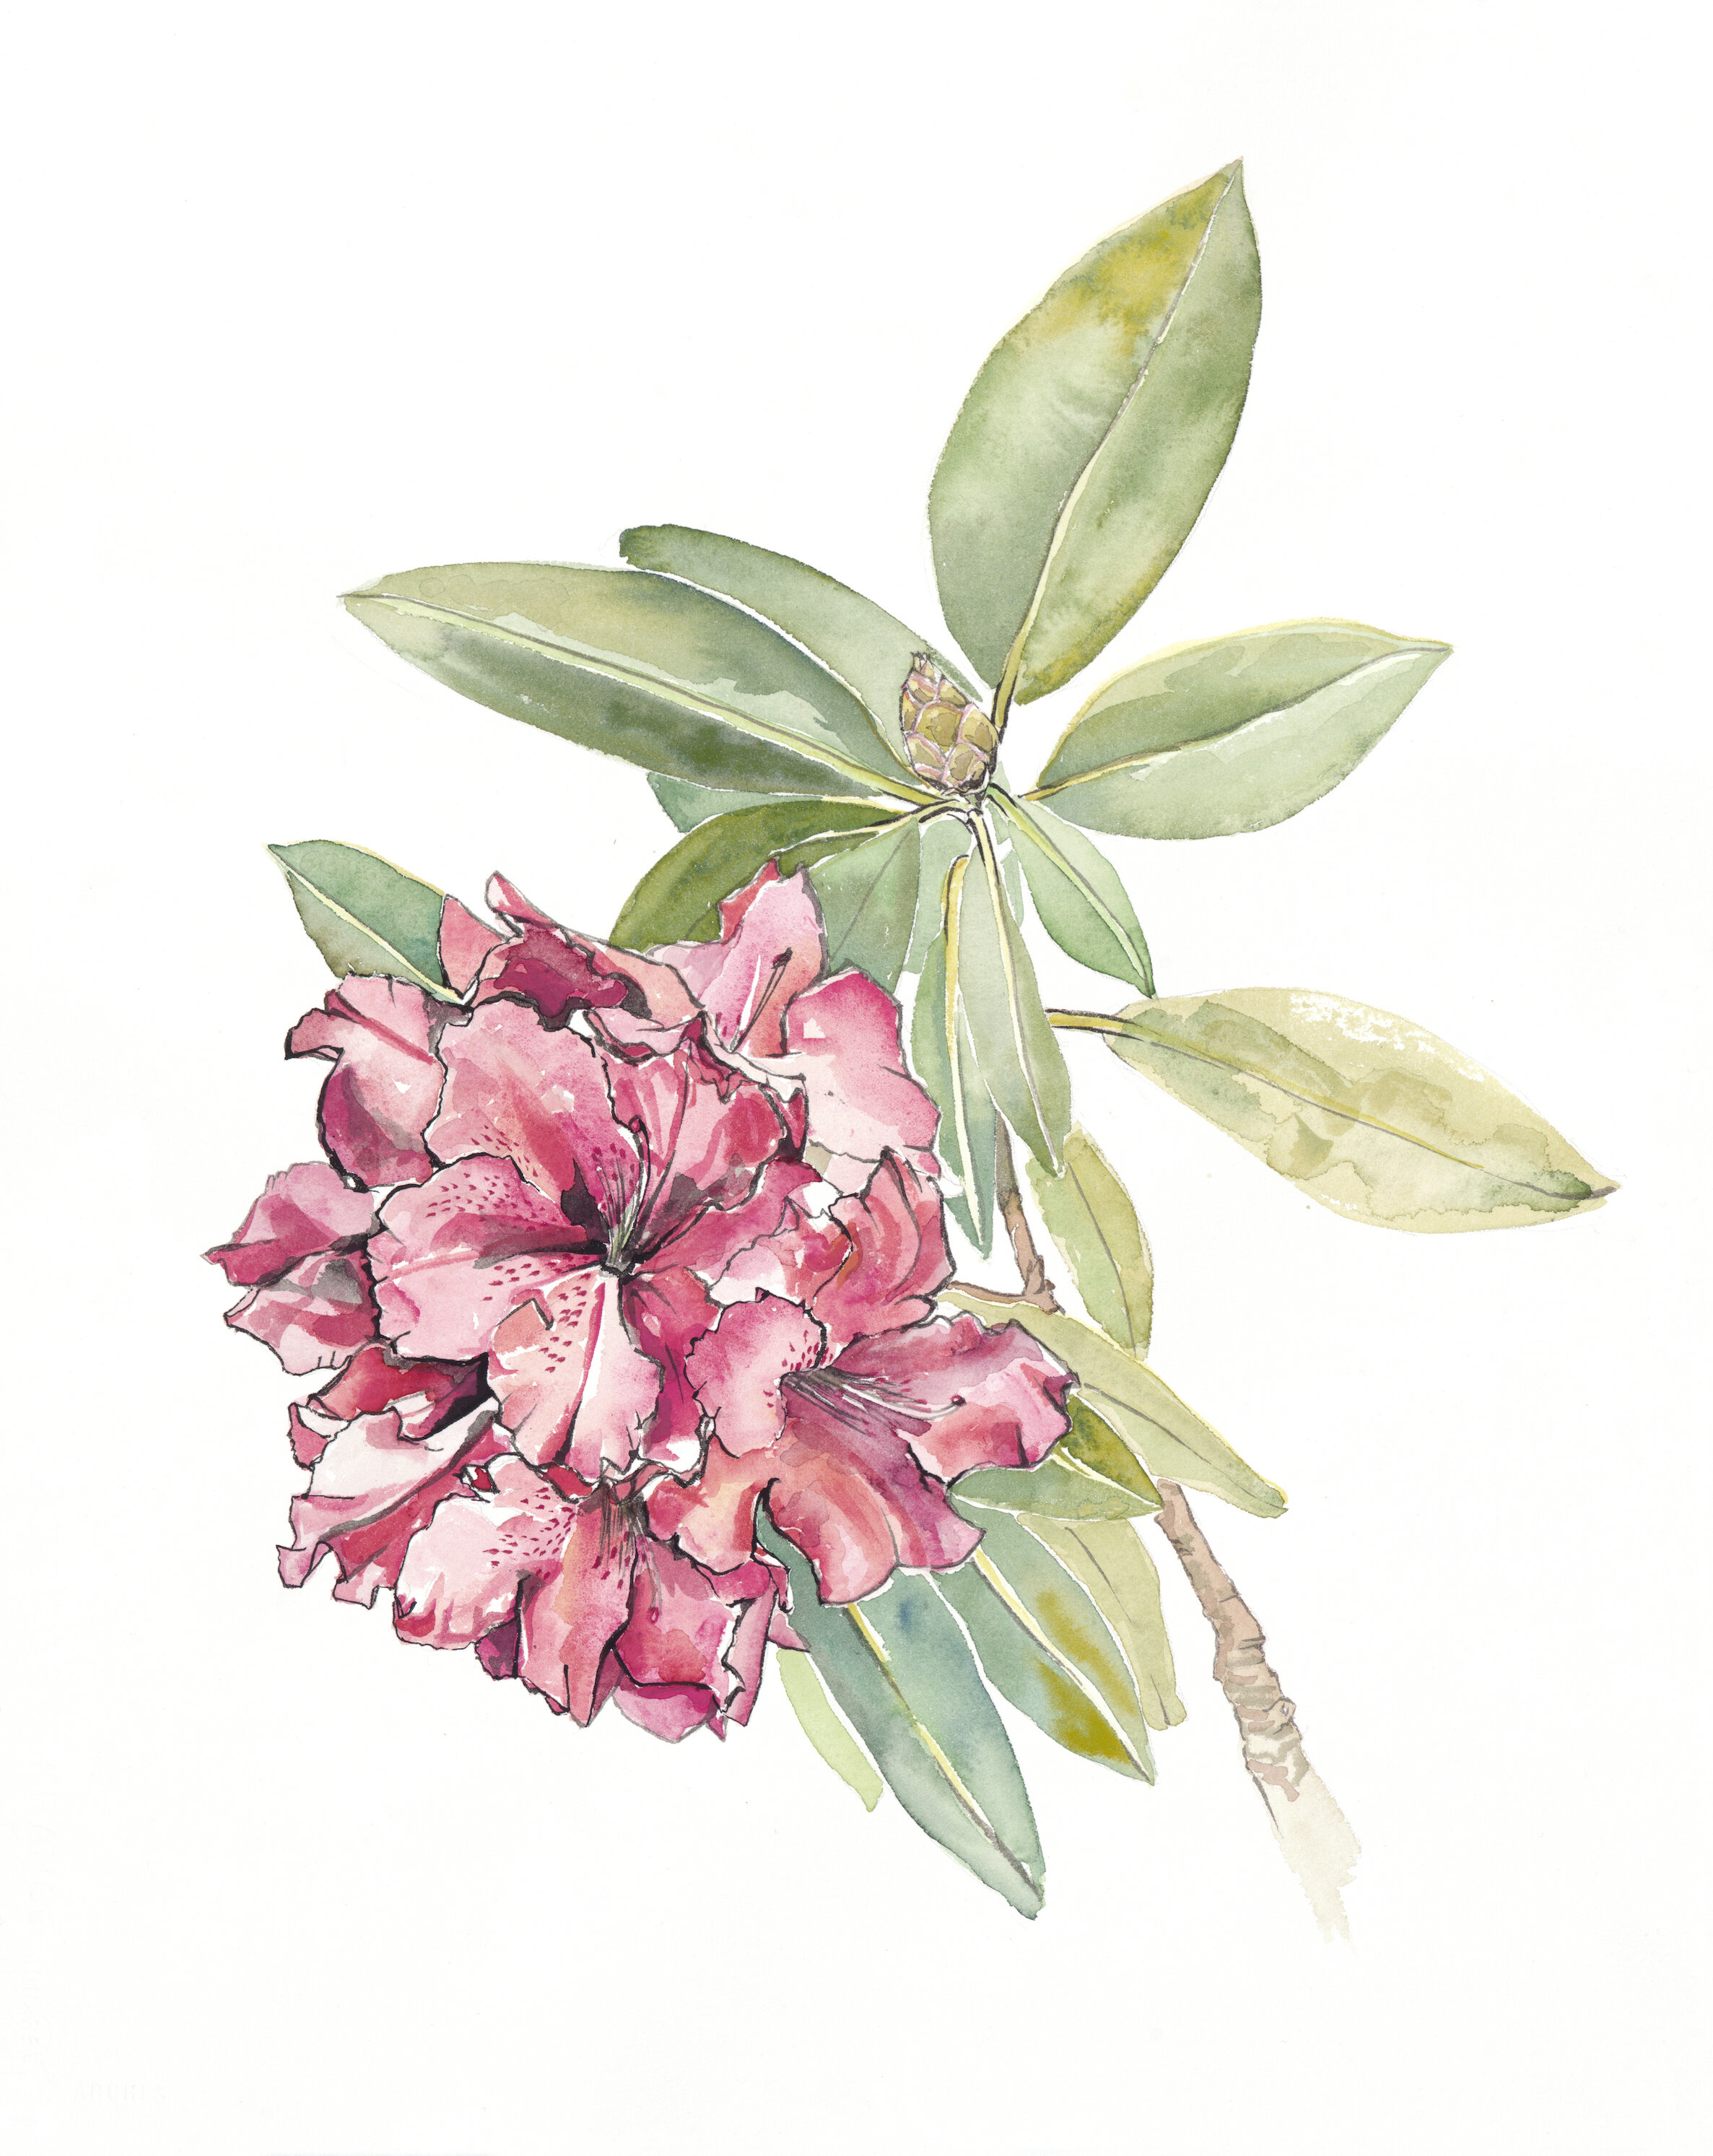 Rhododendron_s.jpg